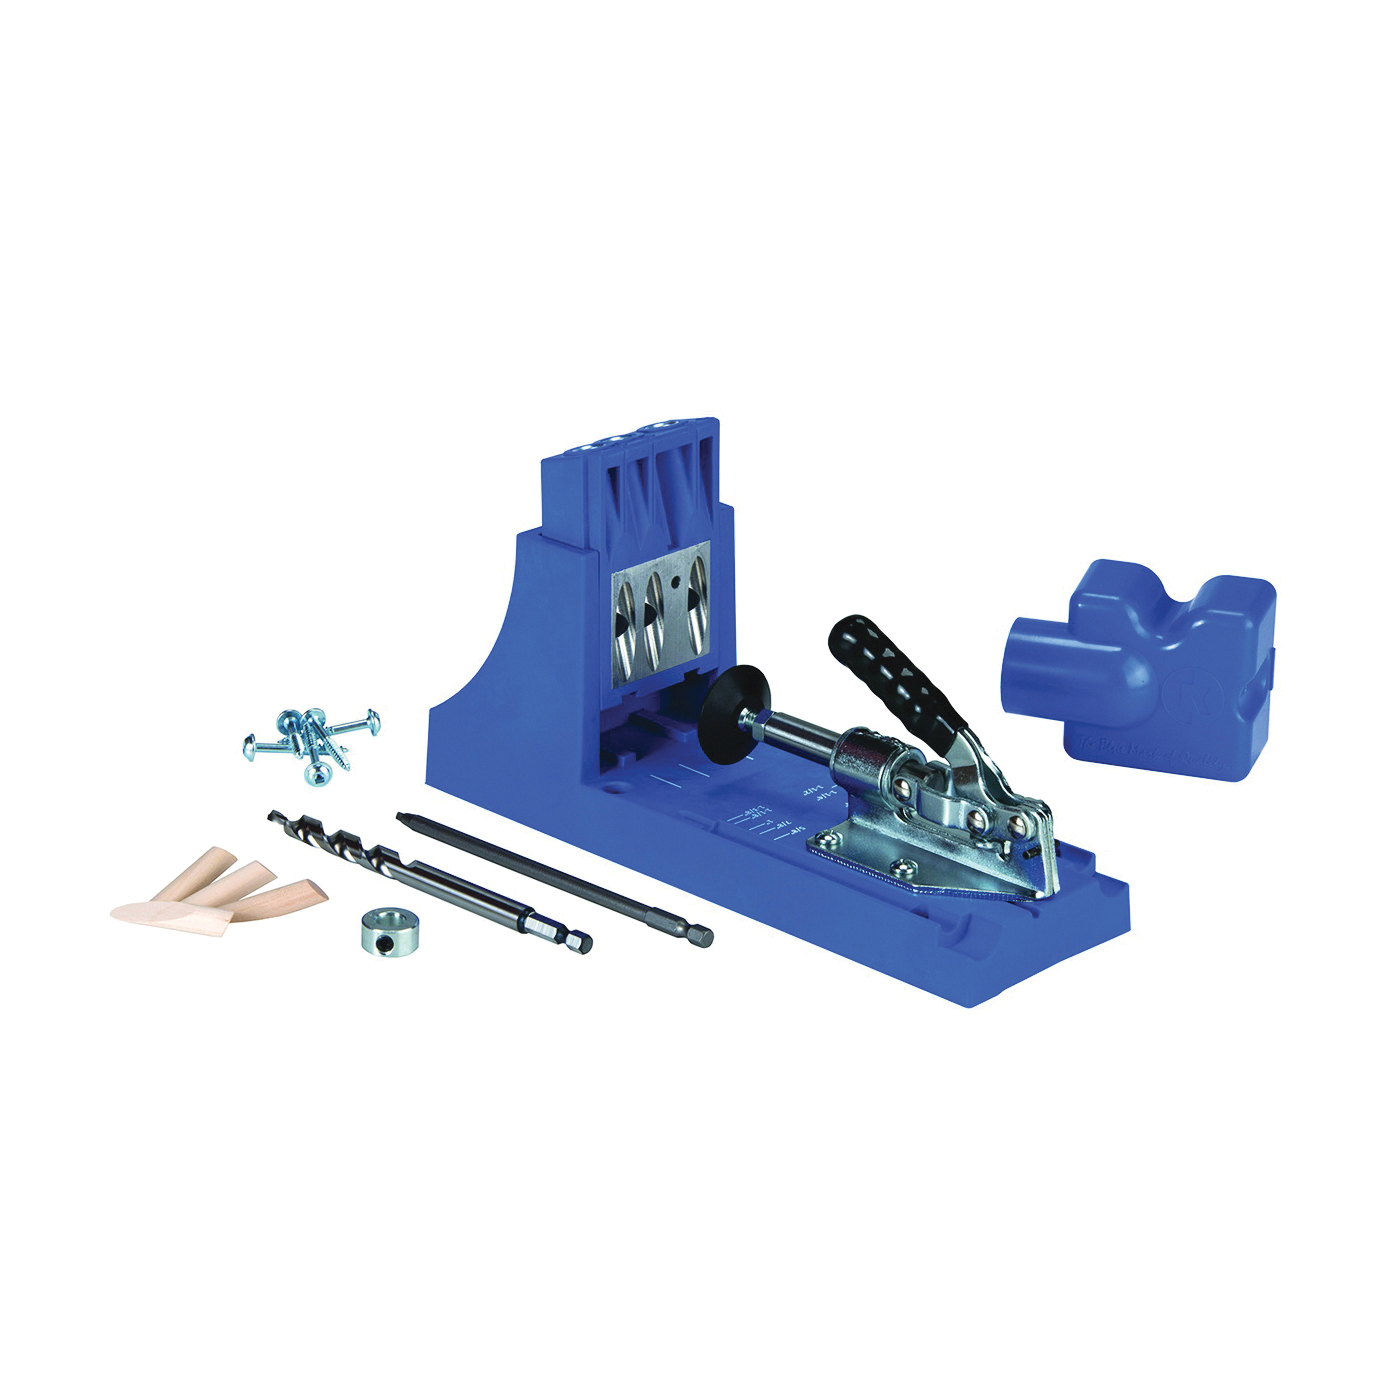 Picture of Kreg K4 Pocket-Hole Jig, 3 -Guide Hole, Glass Filled Nylon, For: 1/2 to 1-1/2 in Thick Materials